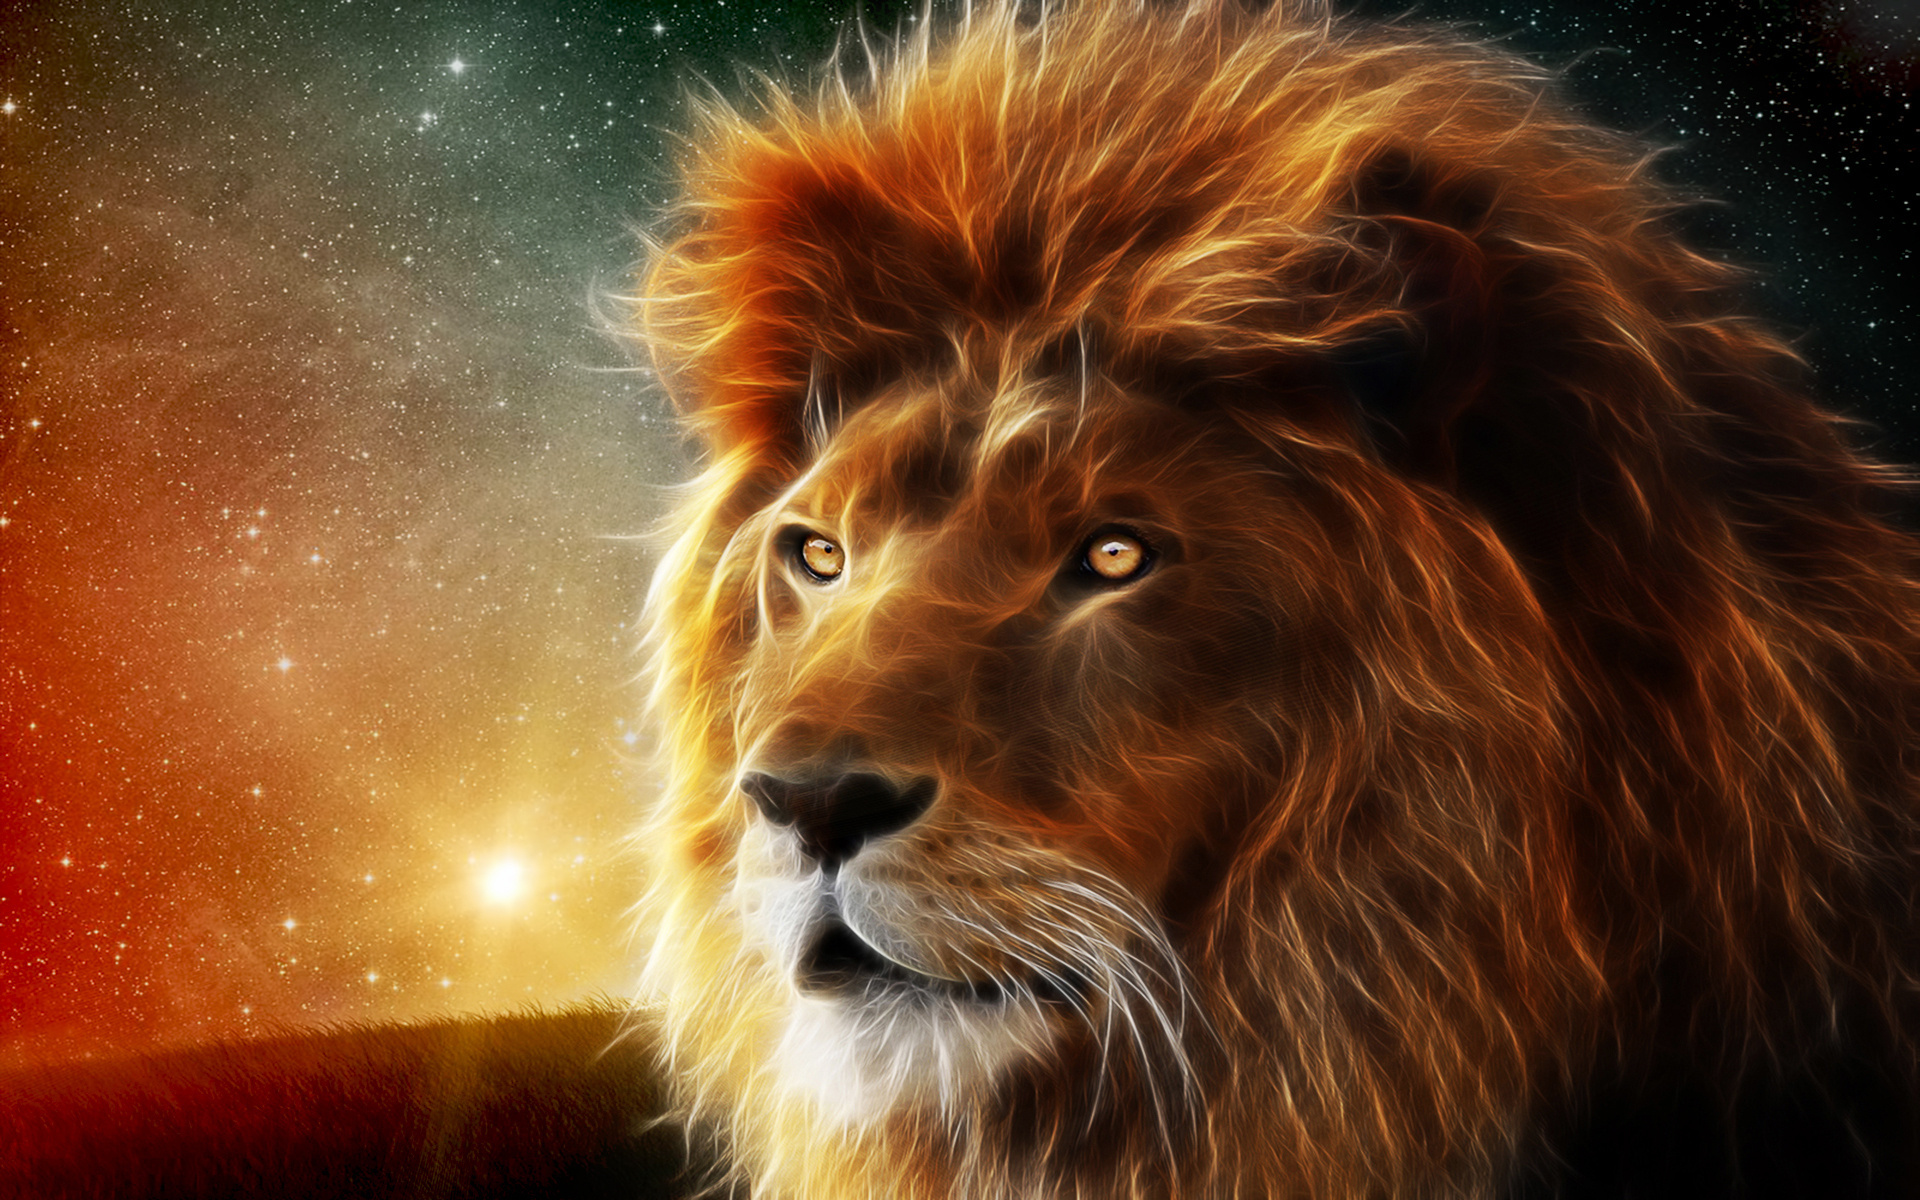 133336d1363857816 lion wallpapers lion pics 1920 x 1200jpg 1920x1200